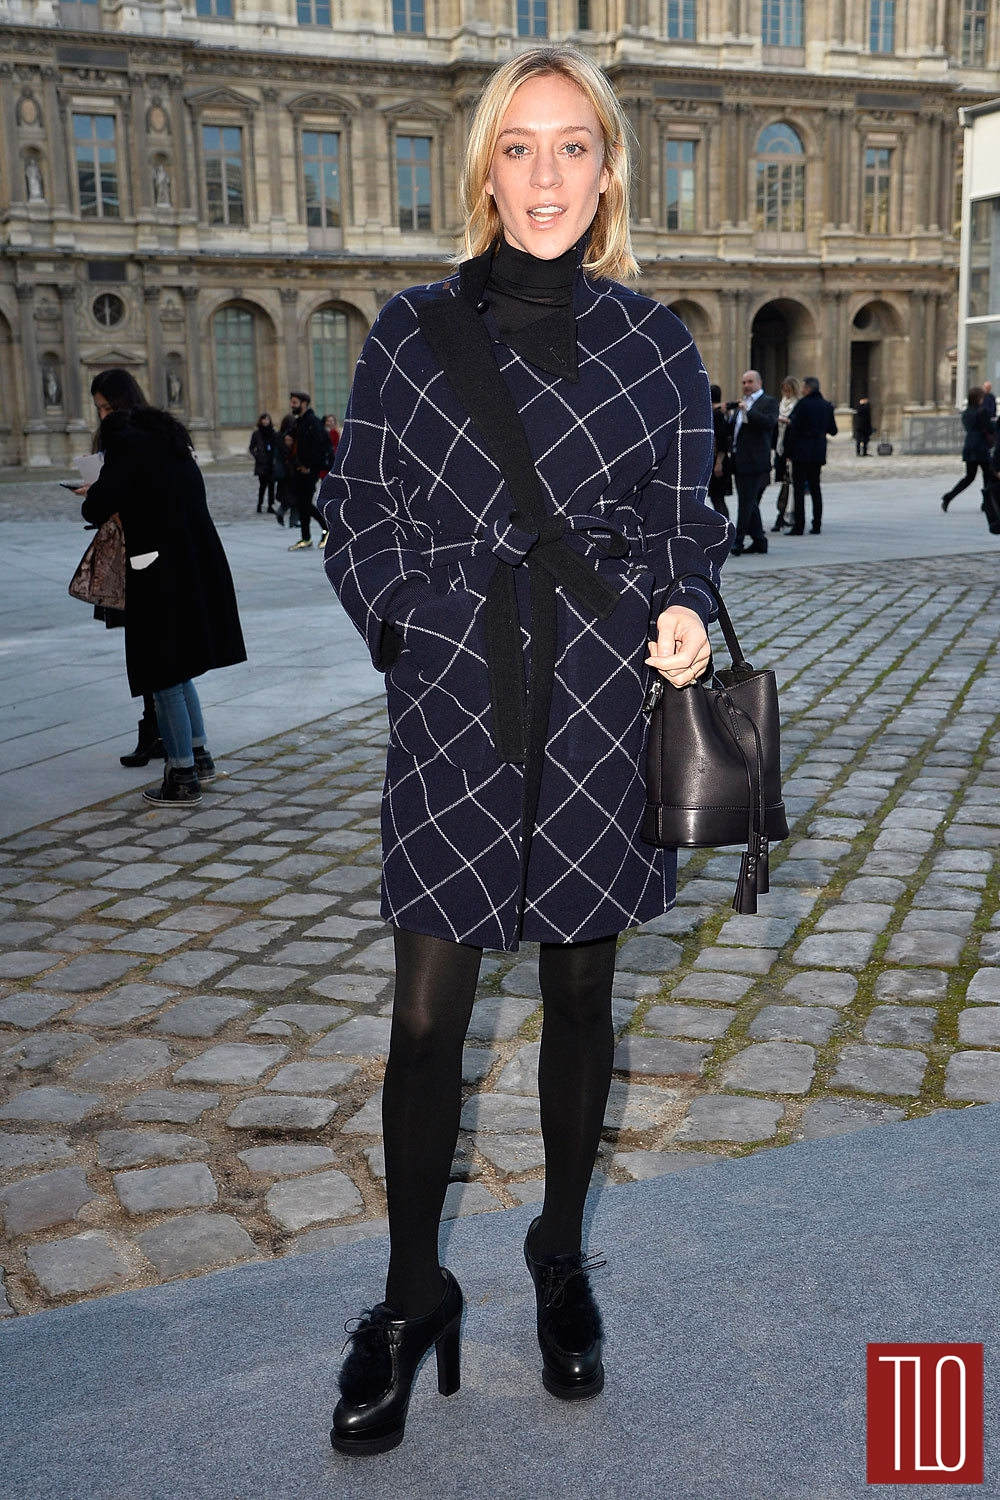 Chloe-Sevigny-Louis-Vuitton-Fall-2014-Show-Paris-Tom-Lorenzo-Site-TLO (1)